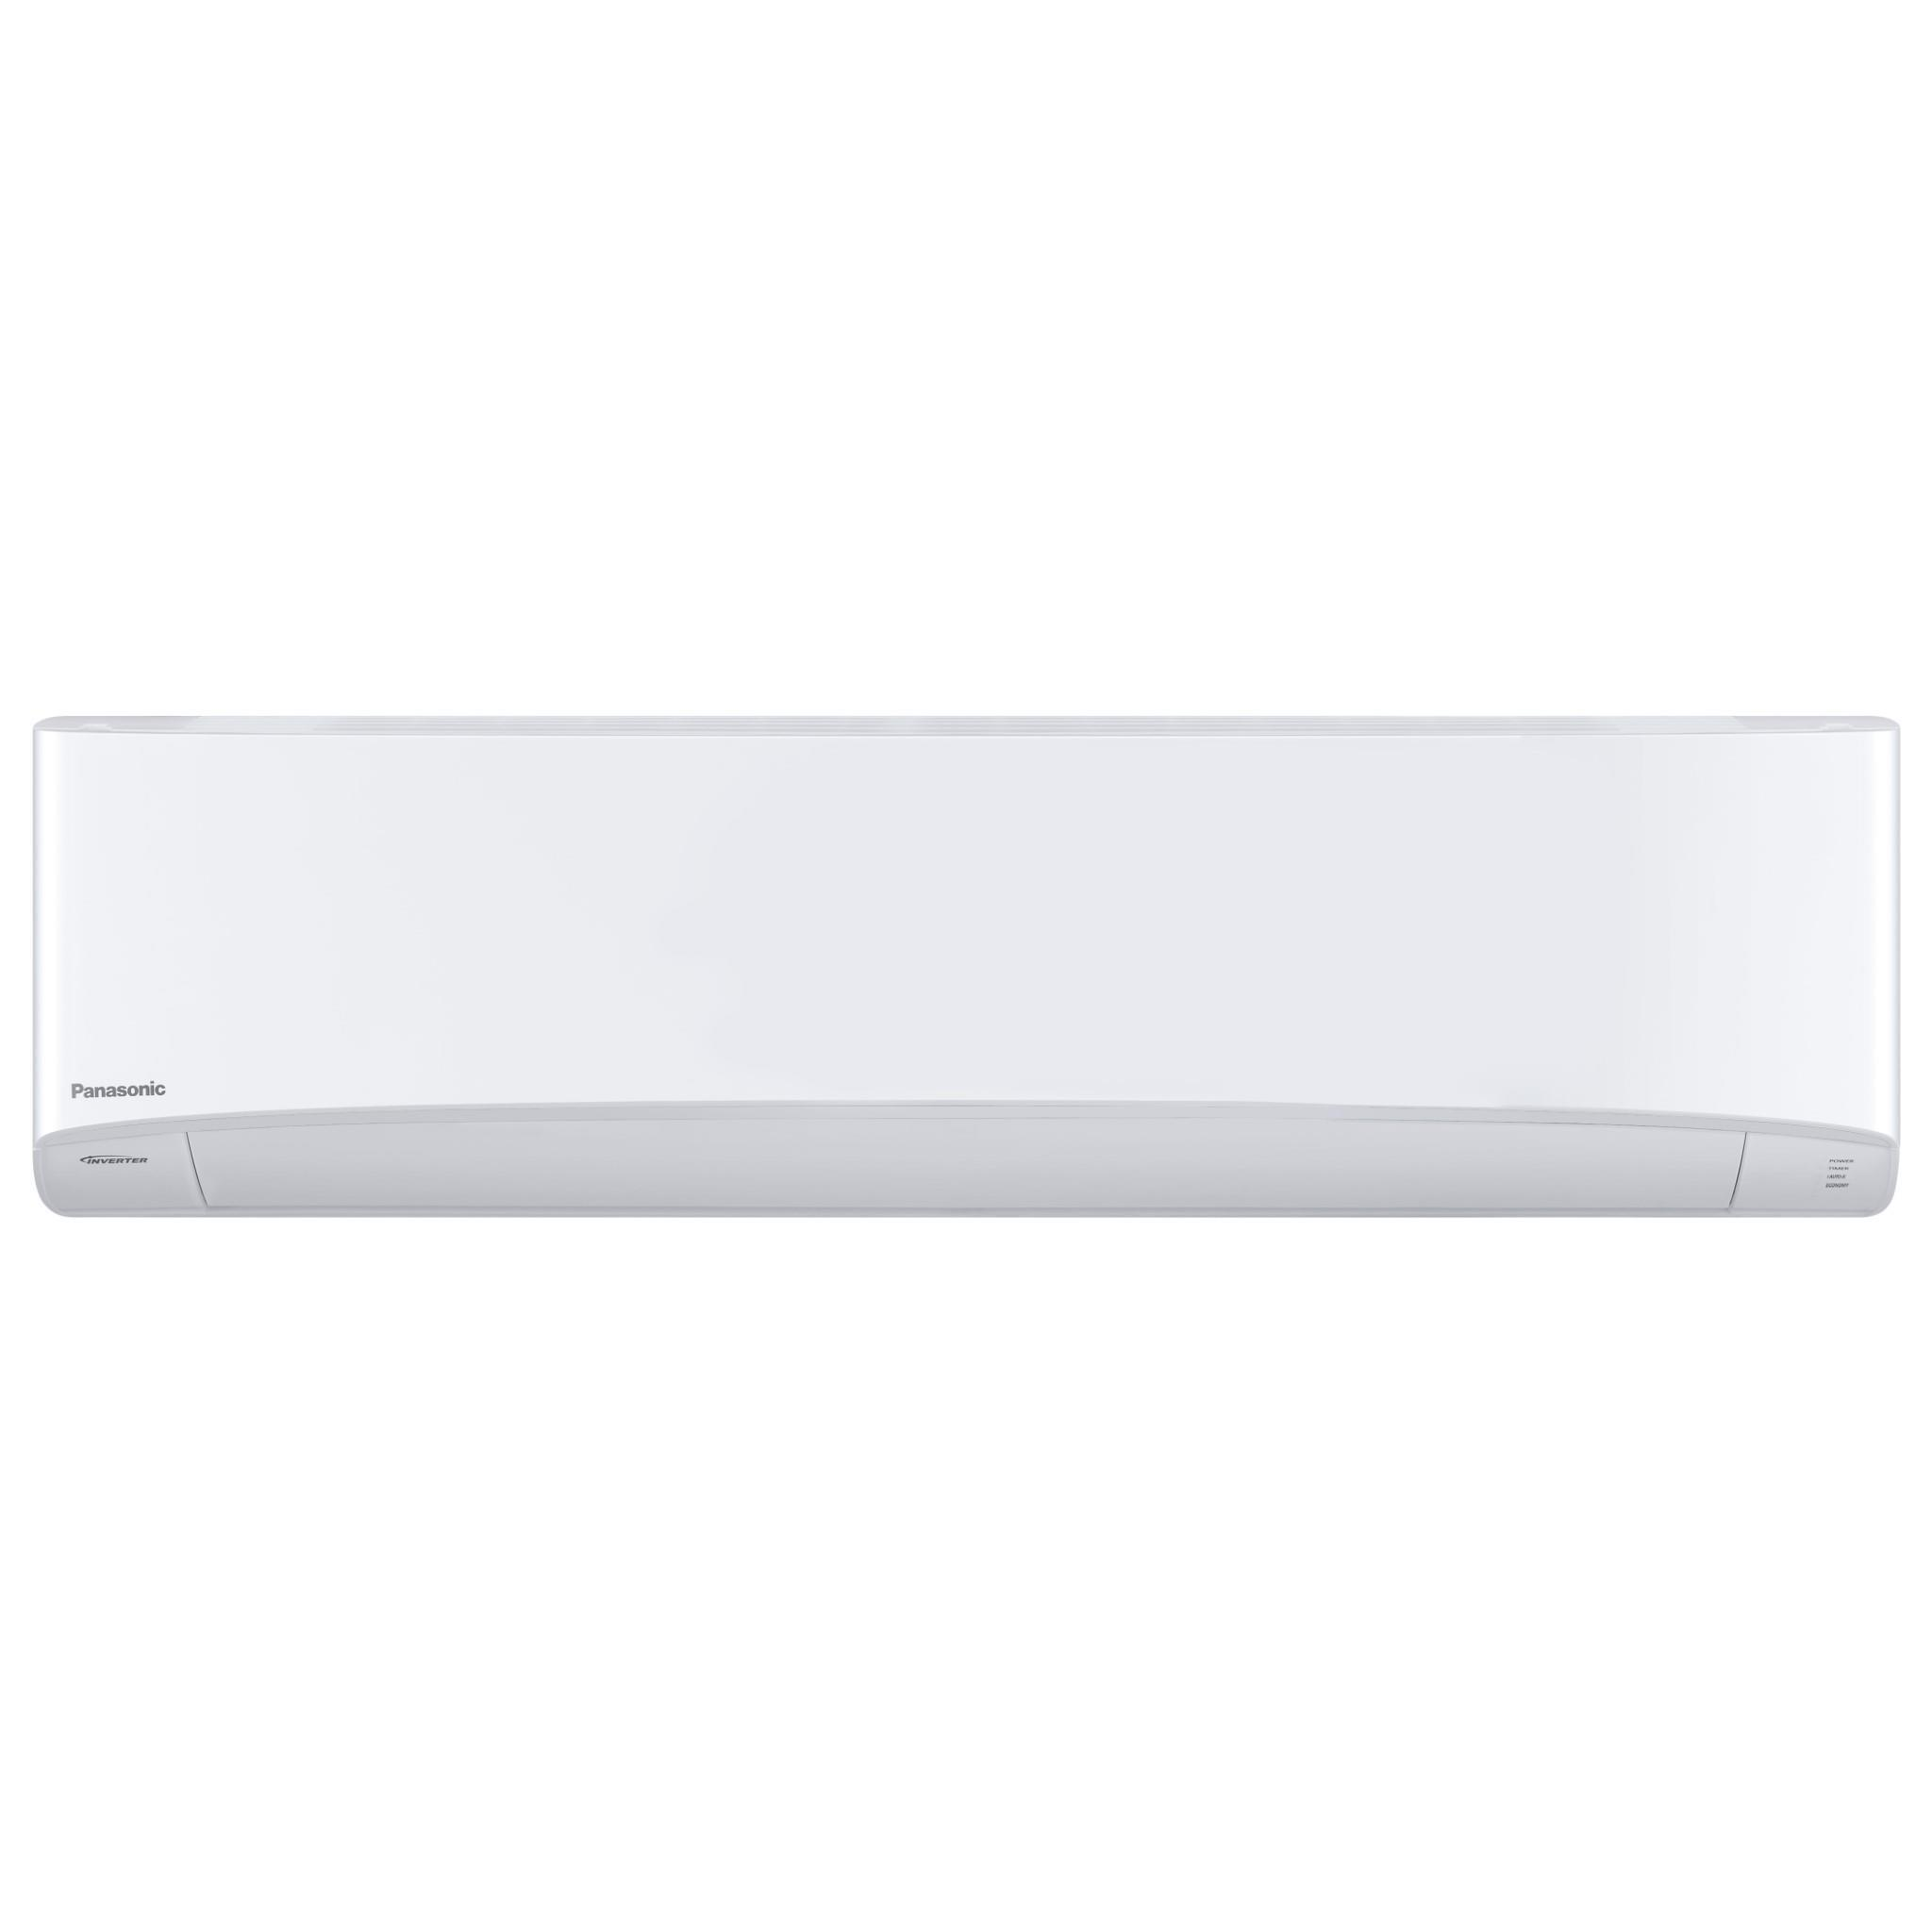 Panasonic 7.1kW Aero Cooling Only Air Conditioner